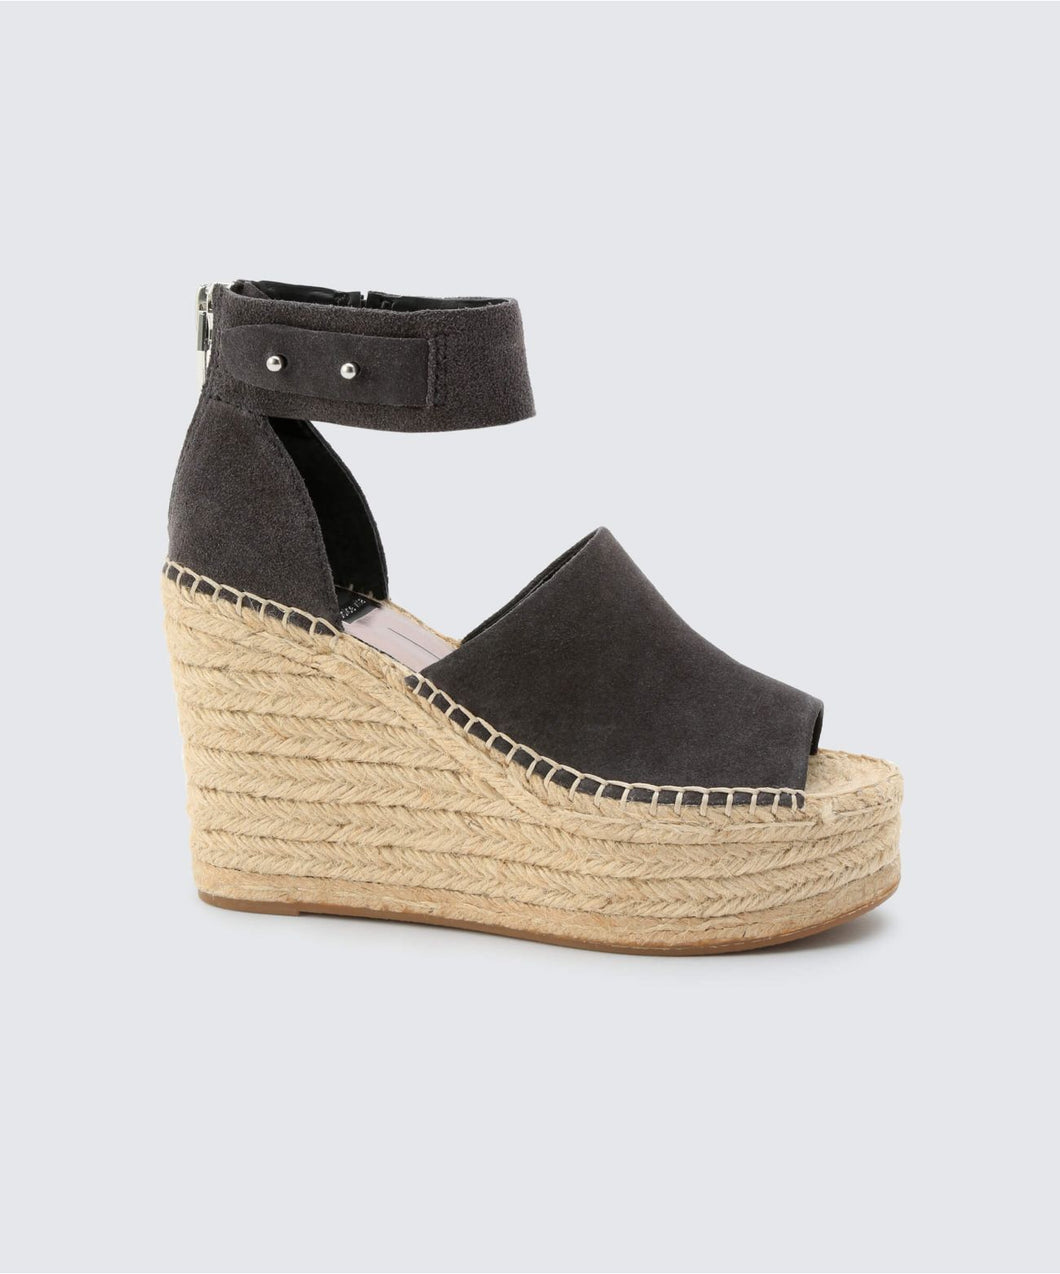 STRAW WEDGES IN ANTHRACITE -   Dolce Vita